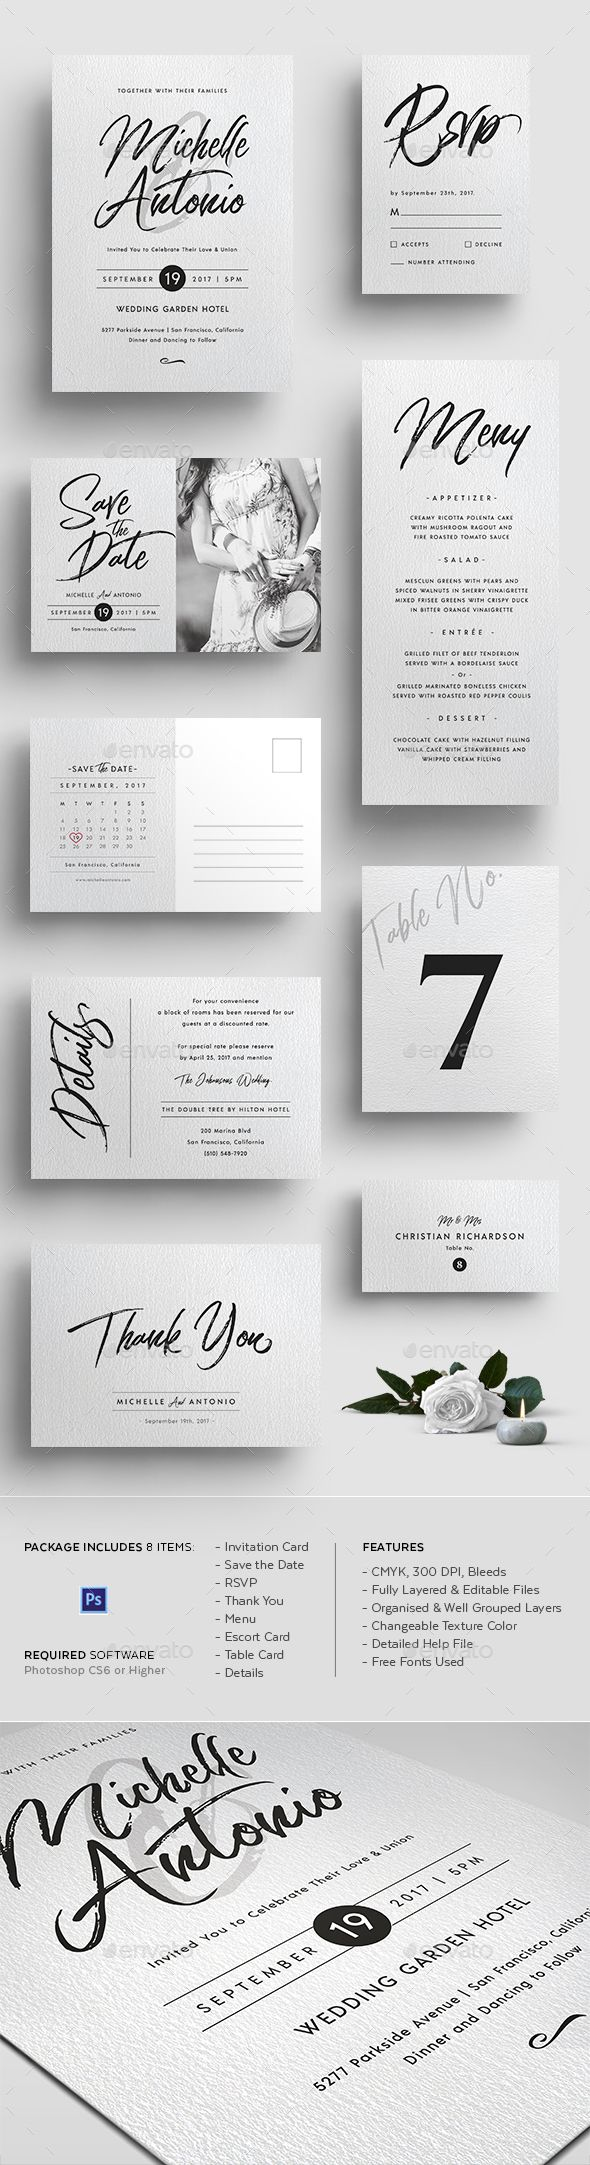 1037 best Wedding Invitation Template & Design images on Pinterest